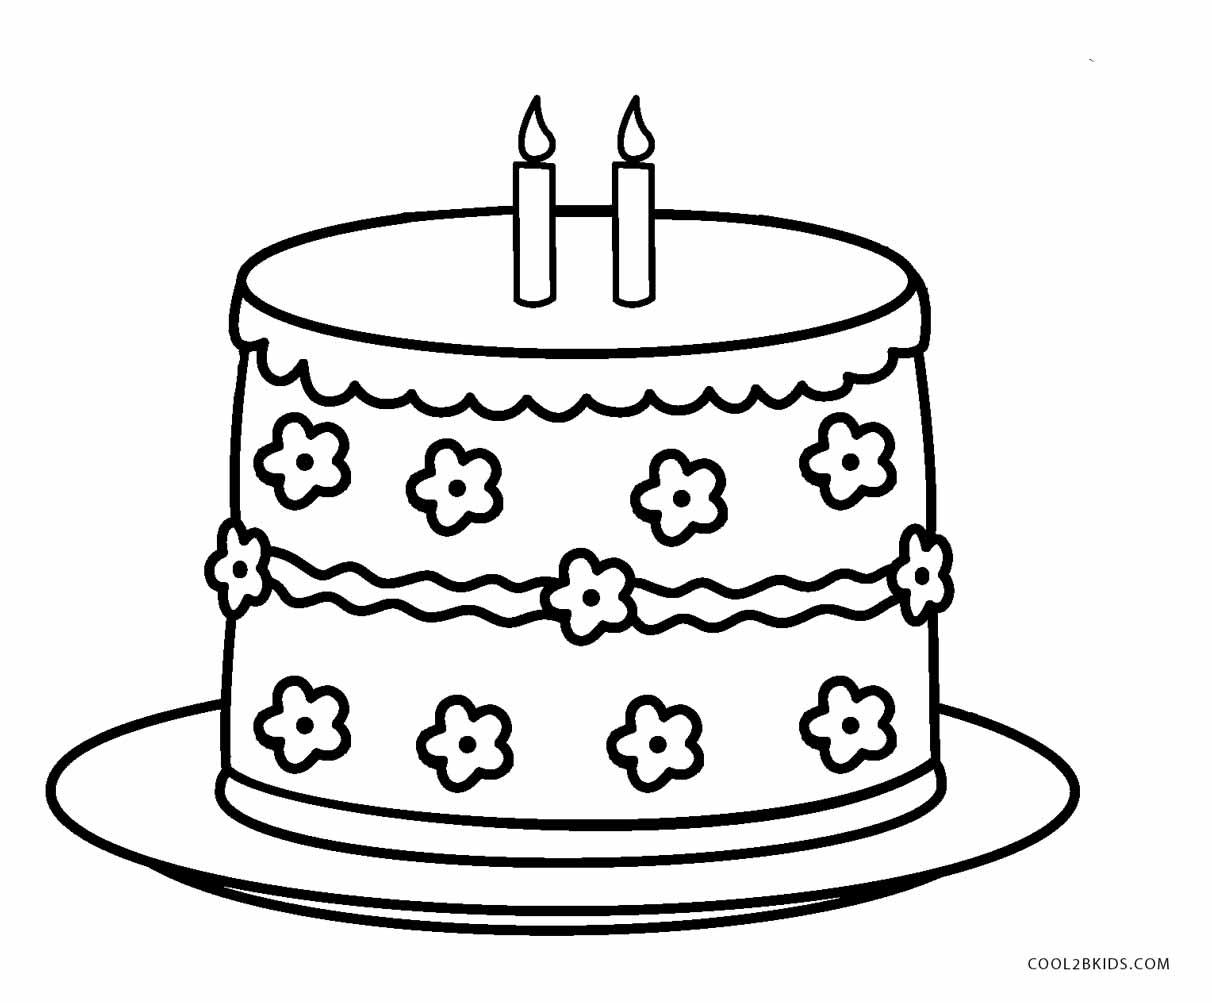 cake coloring pages to print free printable birthday cake coloring pages for kids coloring cake print to pages